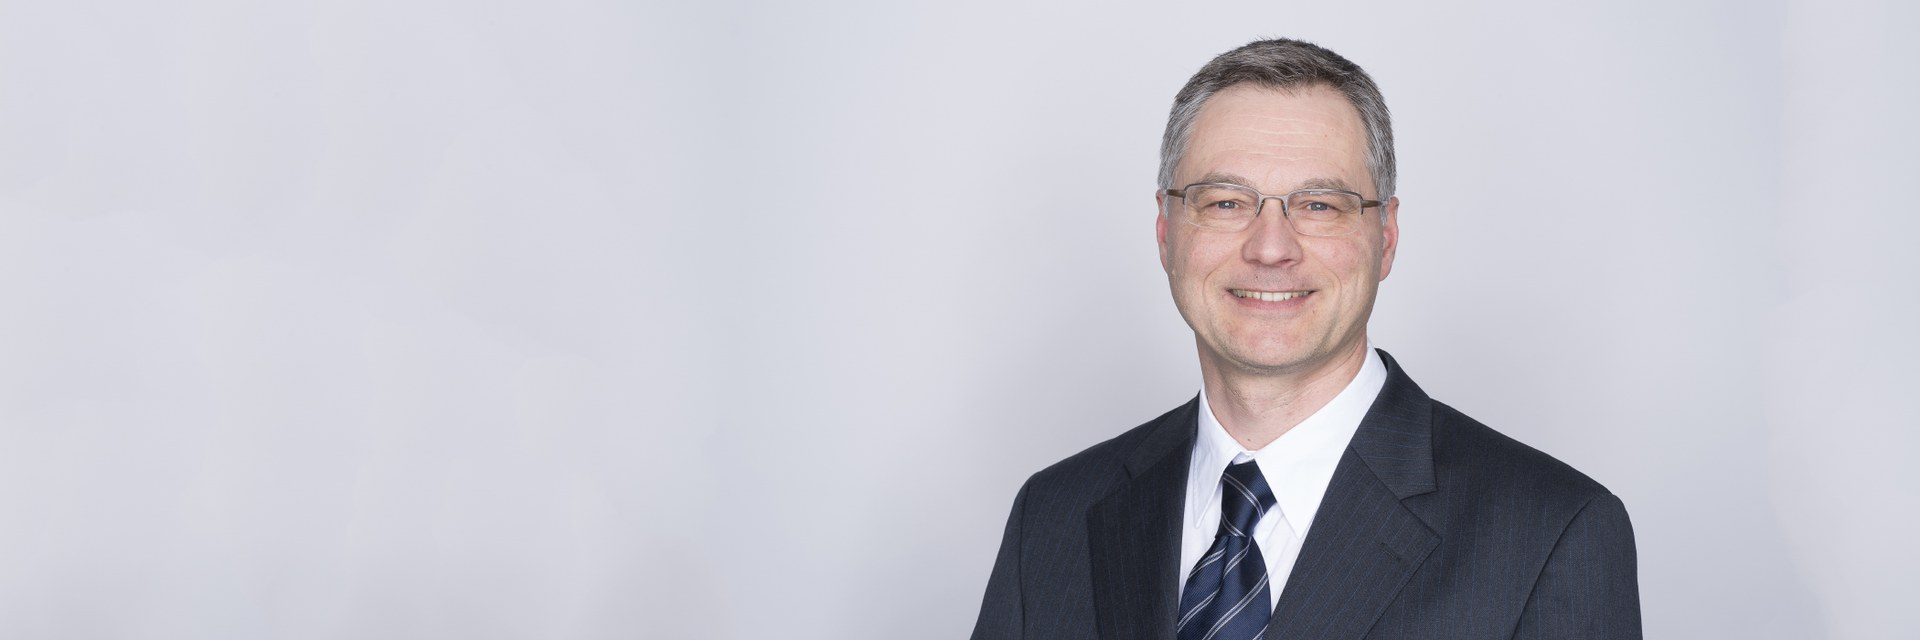 Prof. Dr. Christoph Wildfeuer